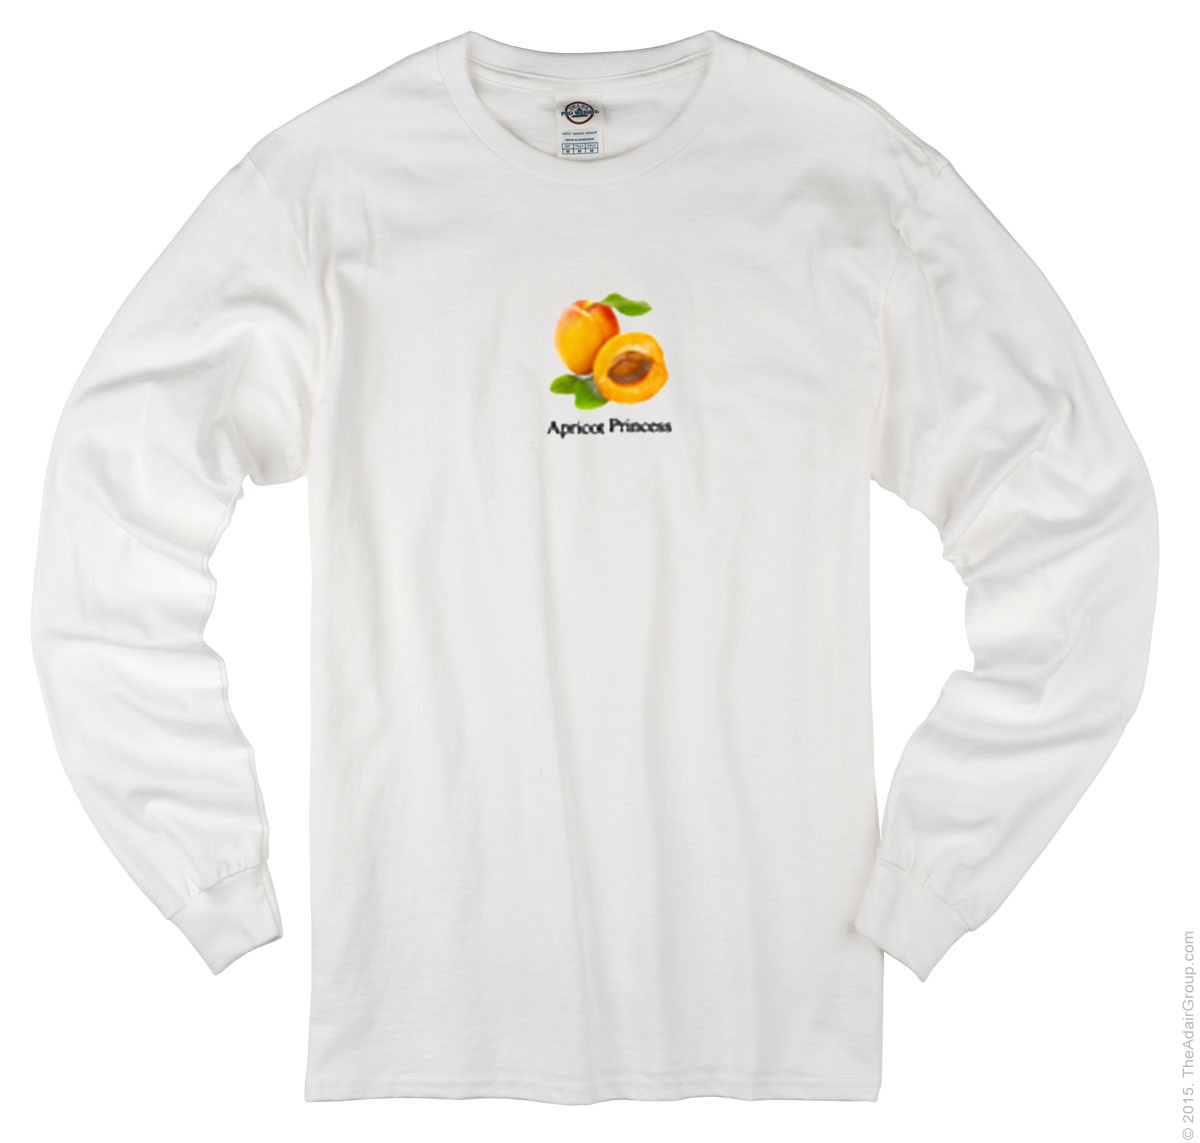 Apricot princess long sleeve white t shirt for Good quality long sleeve t shirts